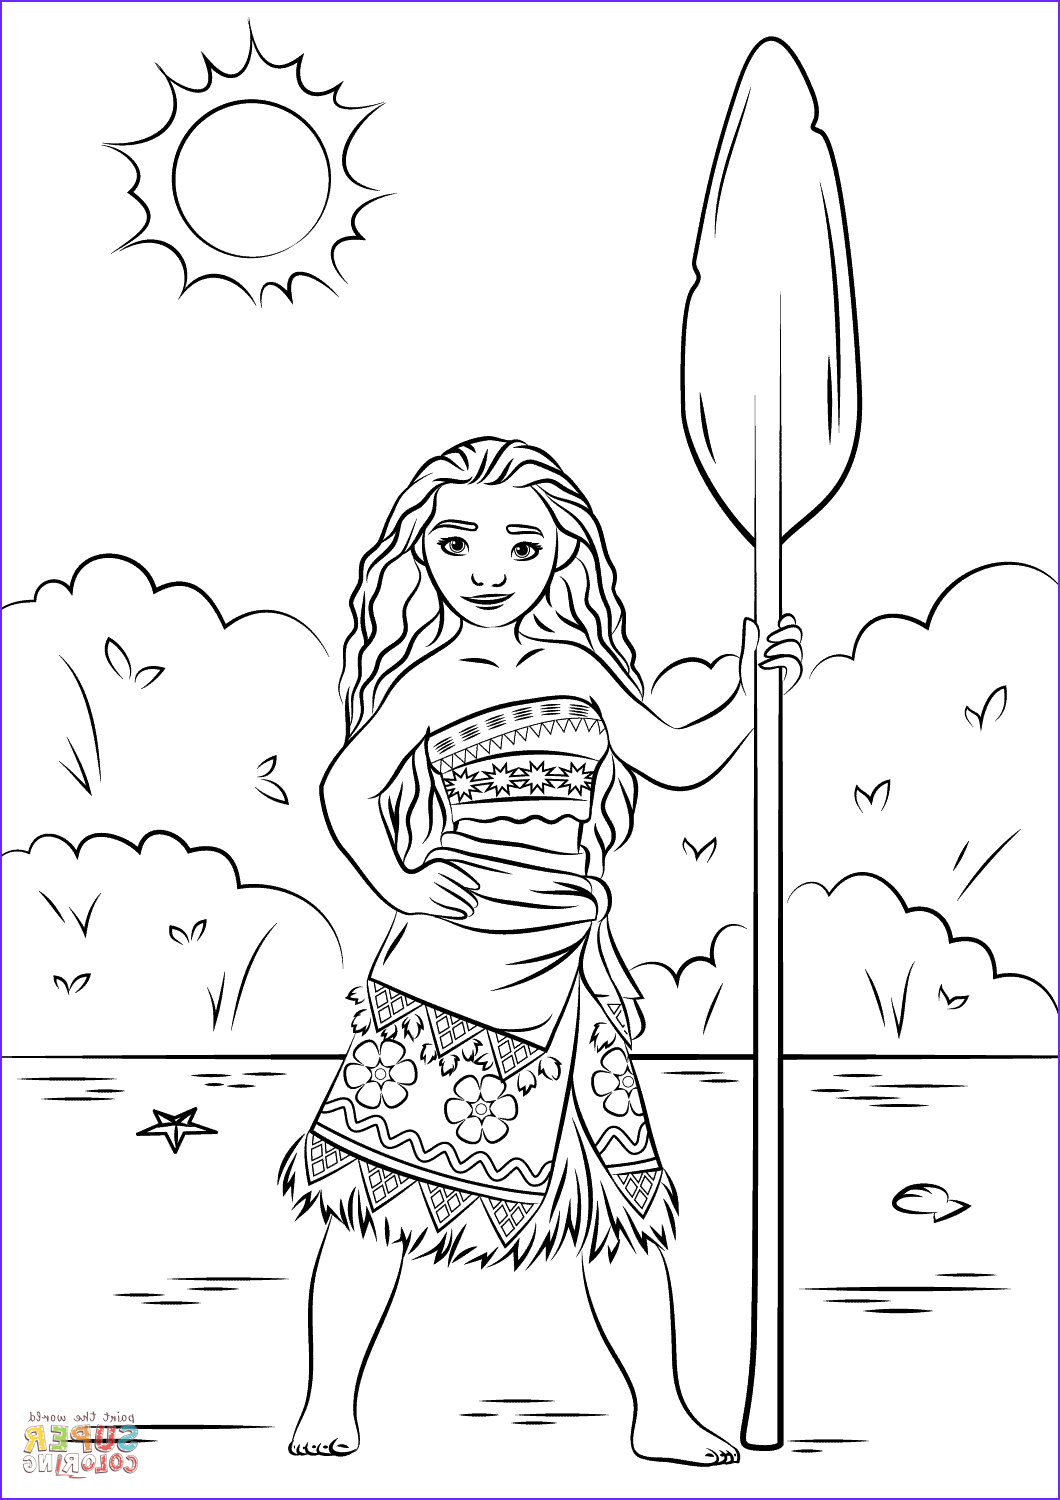 Princess Coloring Pages to Print New Photography Princess Moana Coloring Page